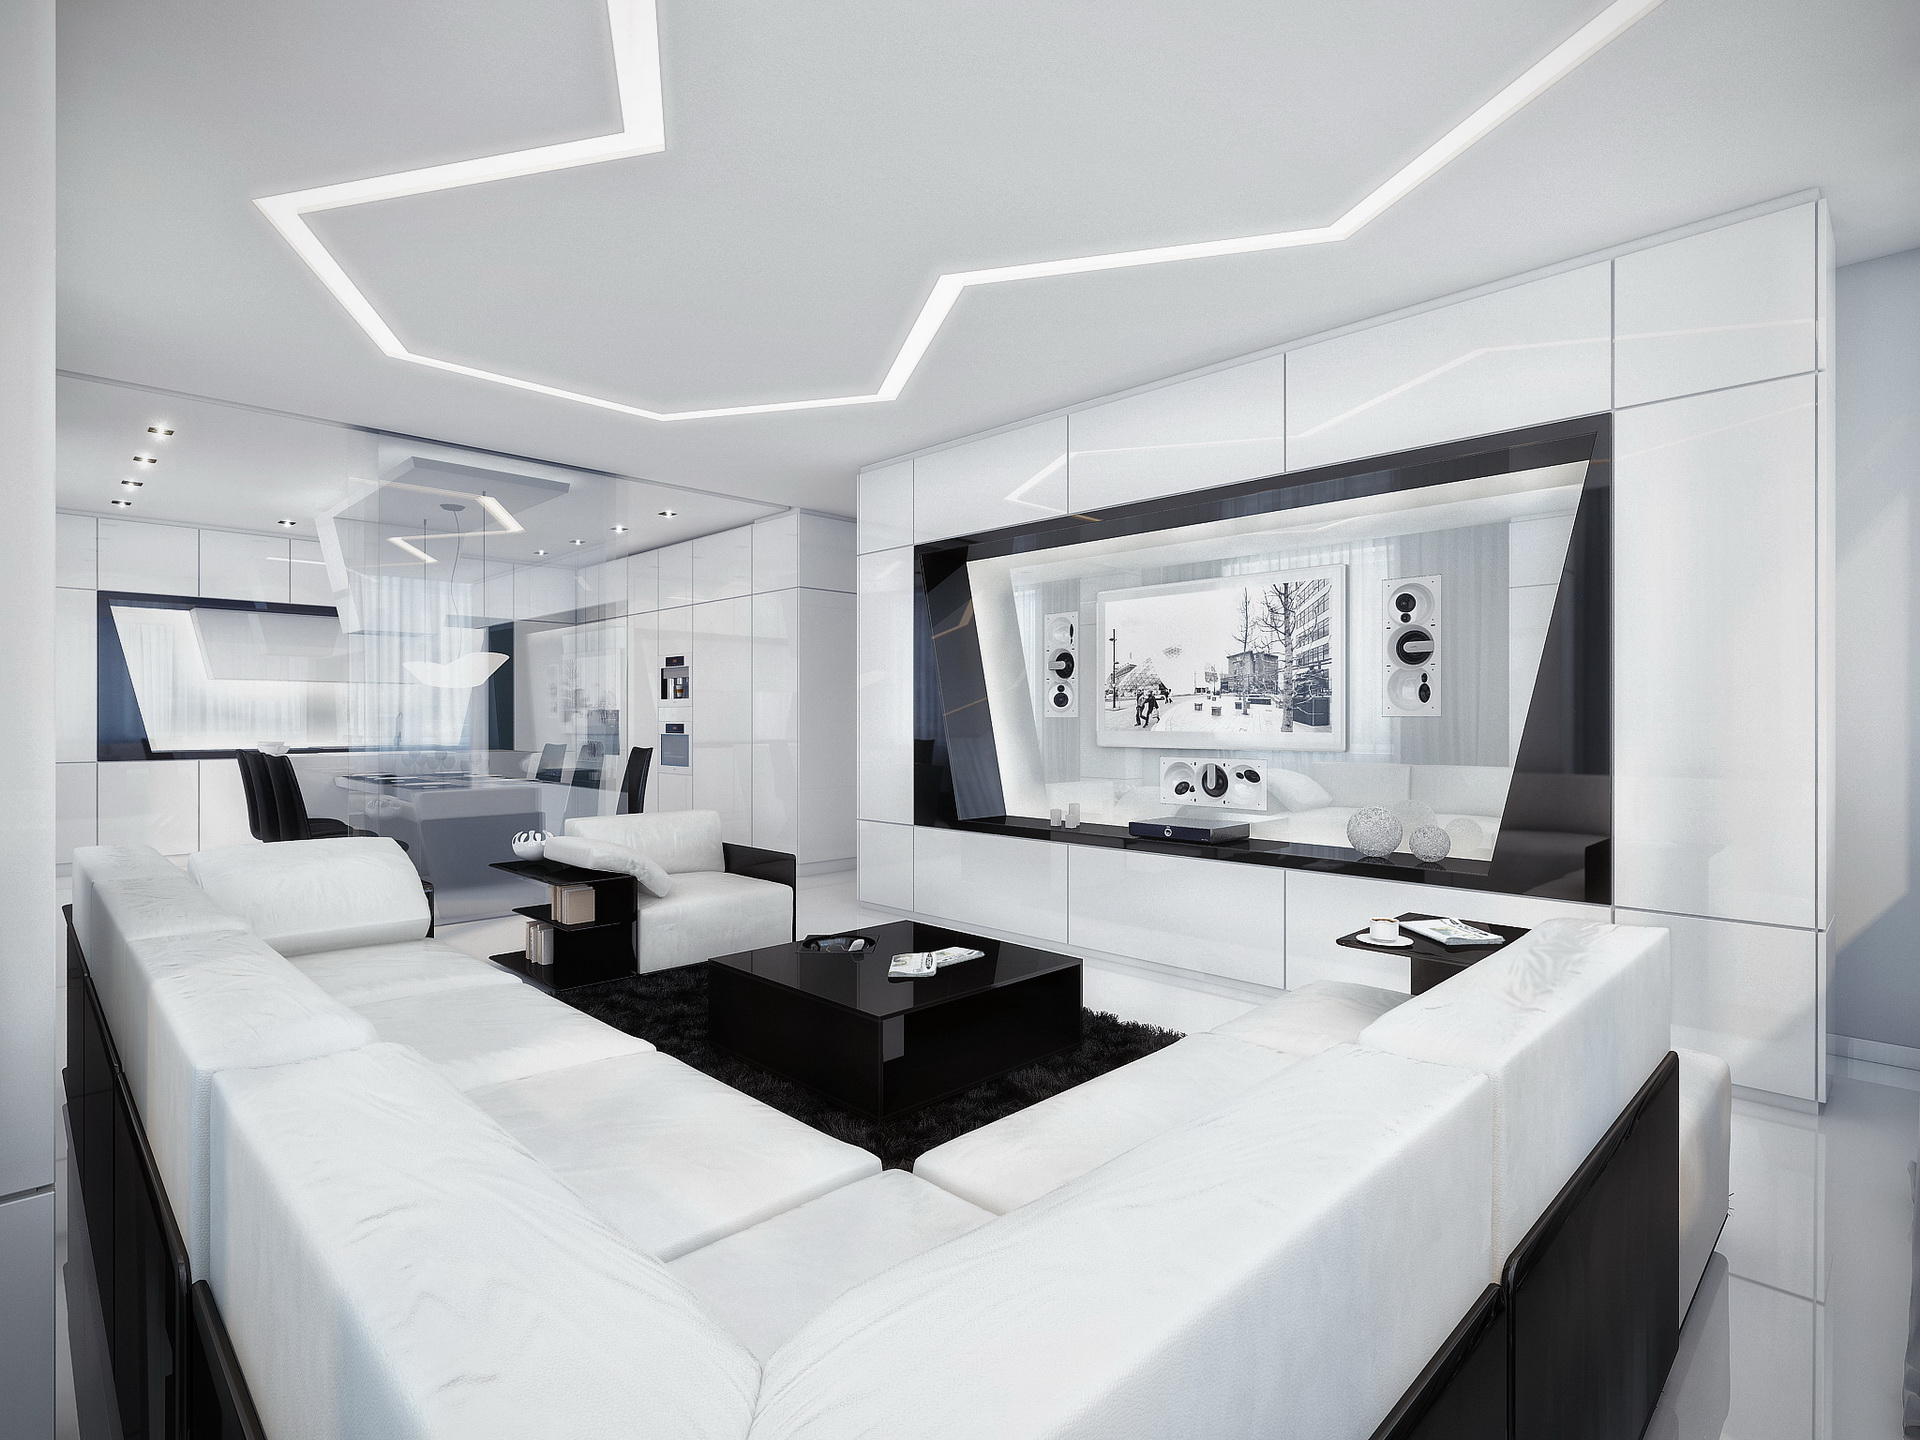 ... Simple Room Clean Lines Touch Of Black Elements Black And White  Contemporary Design ...